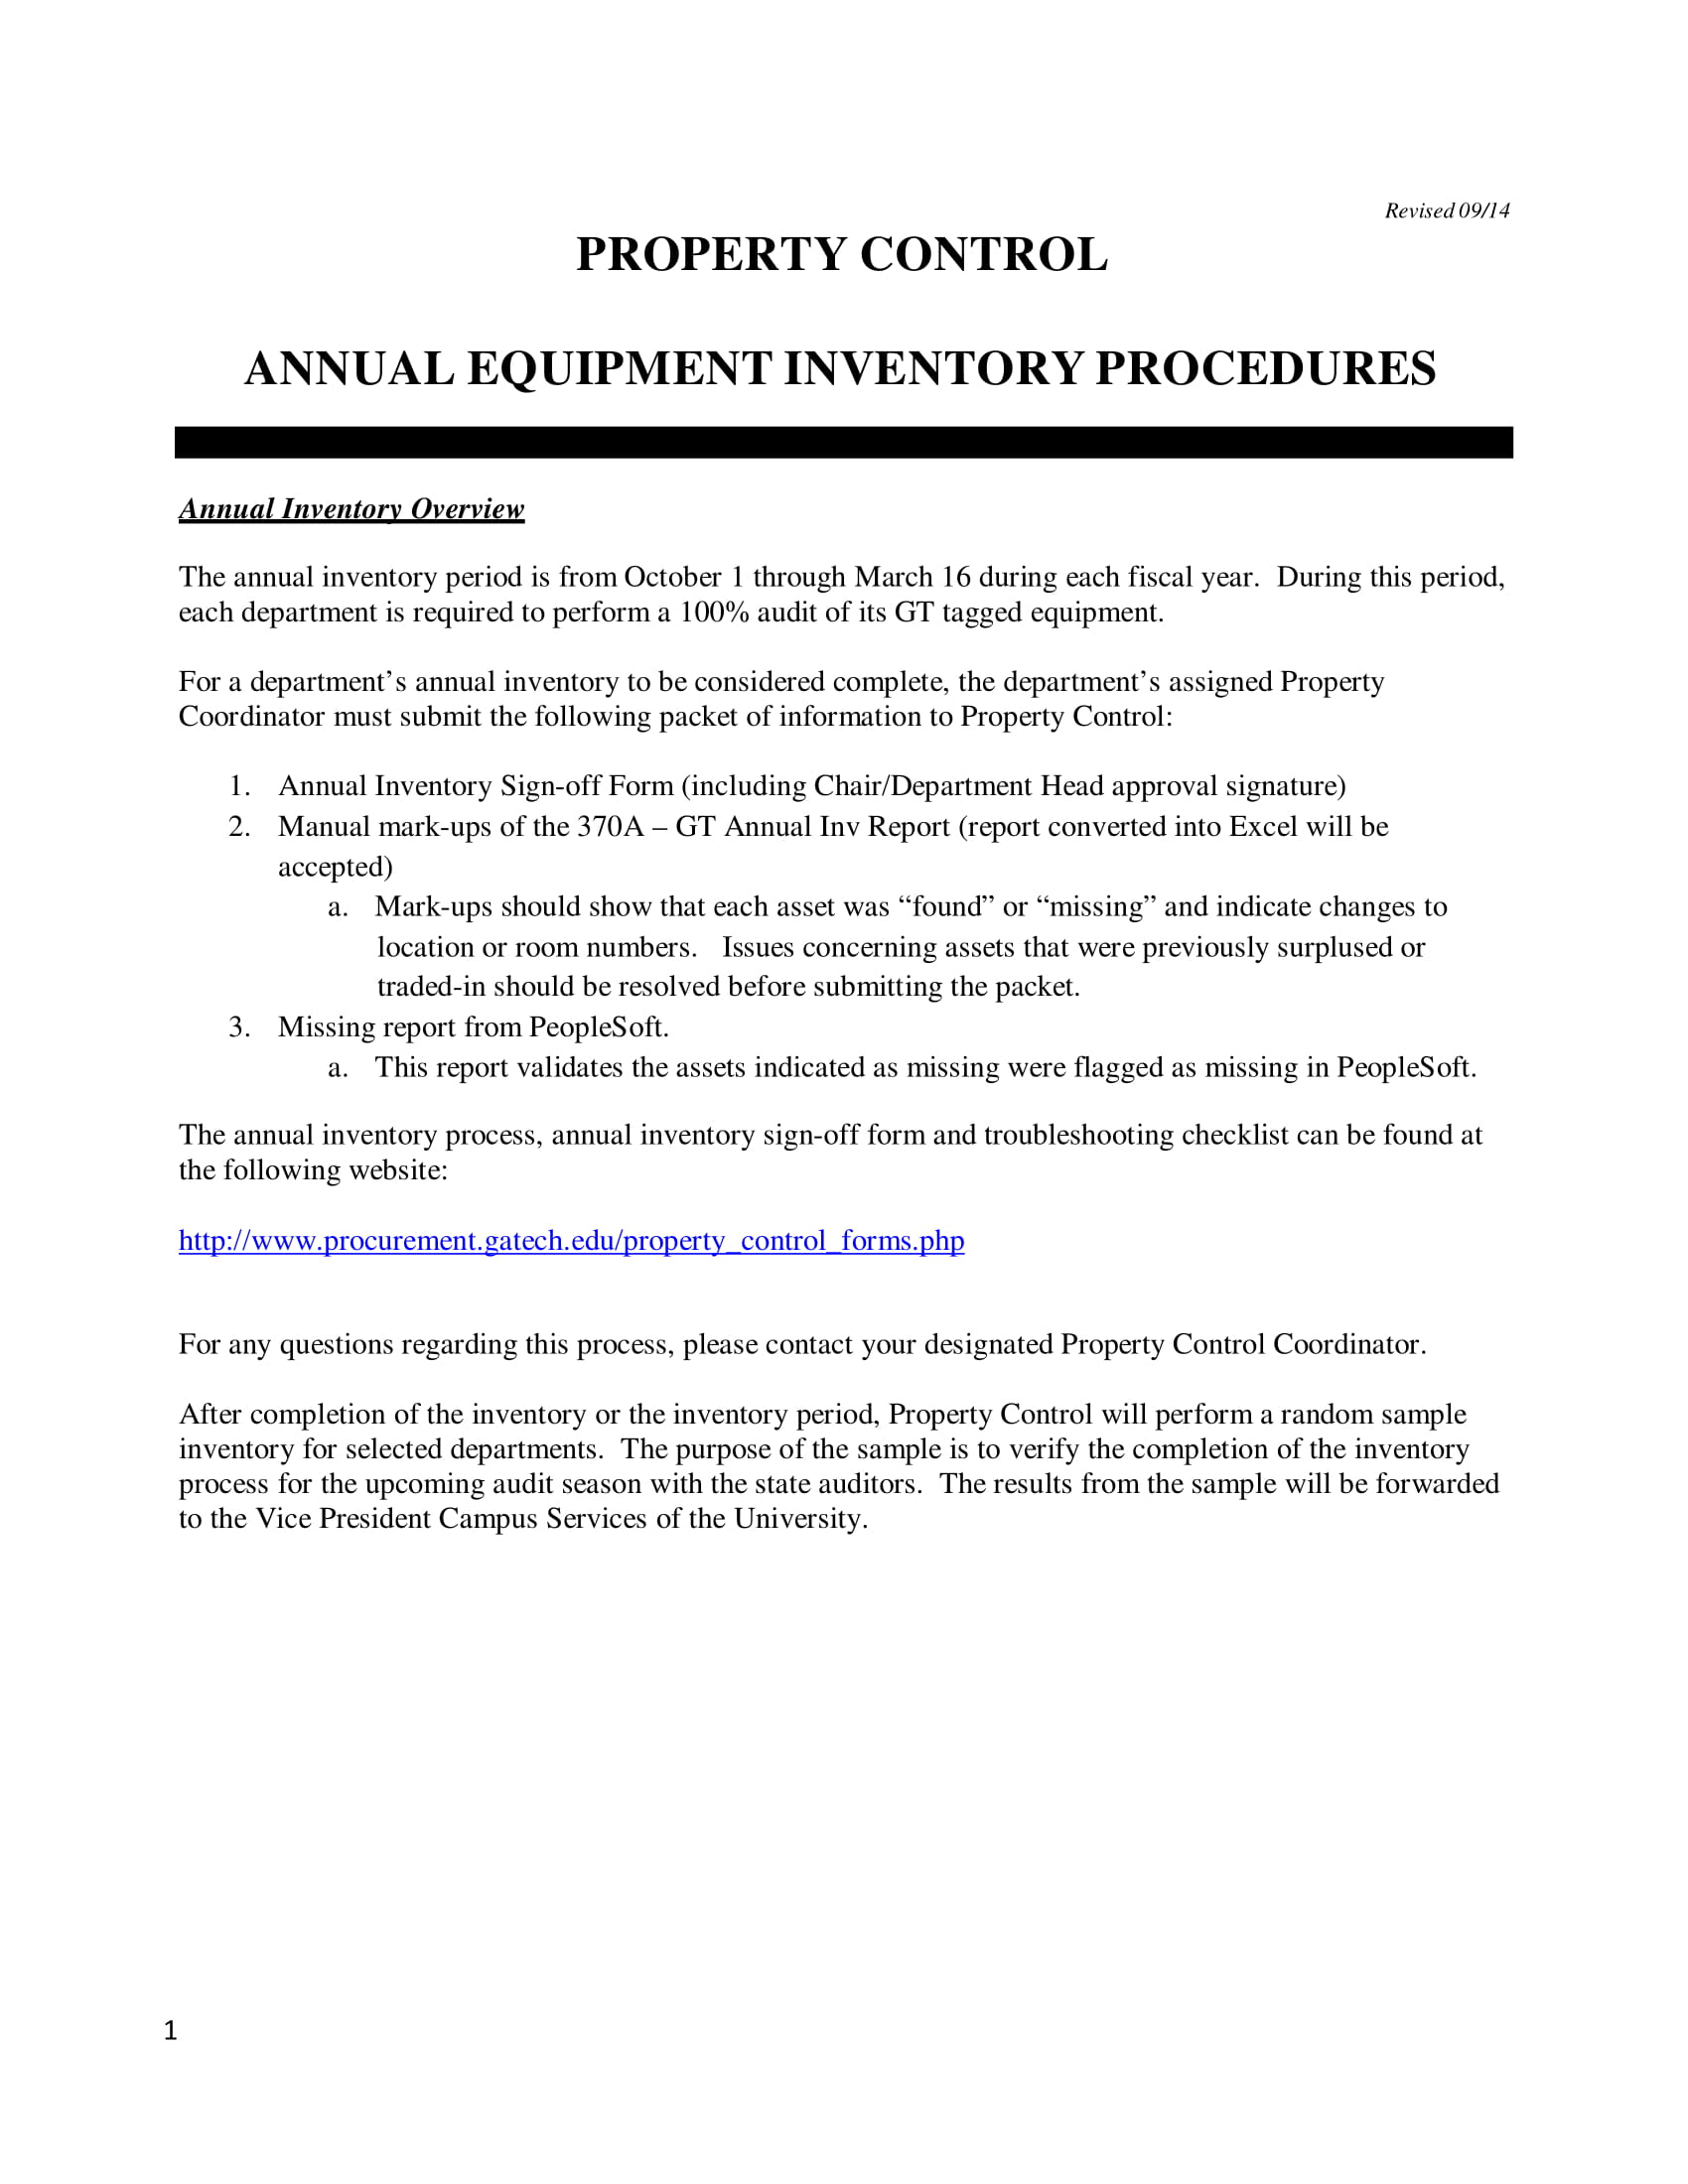 annual equipment inventory procedures example 01